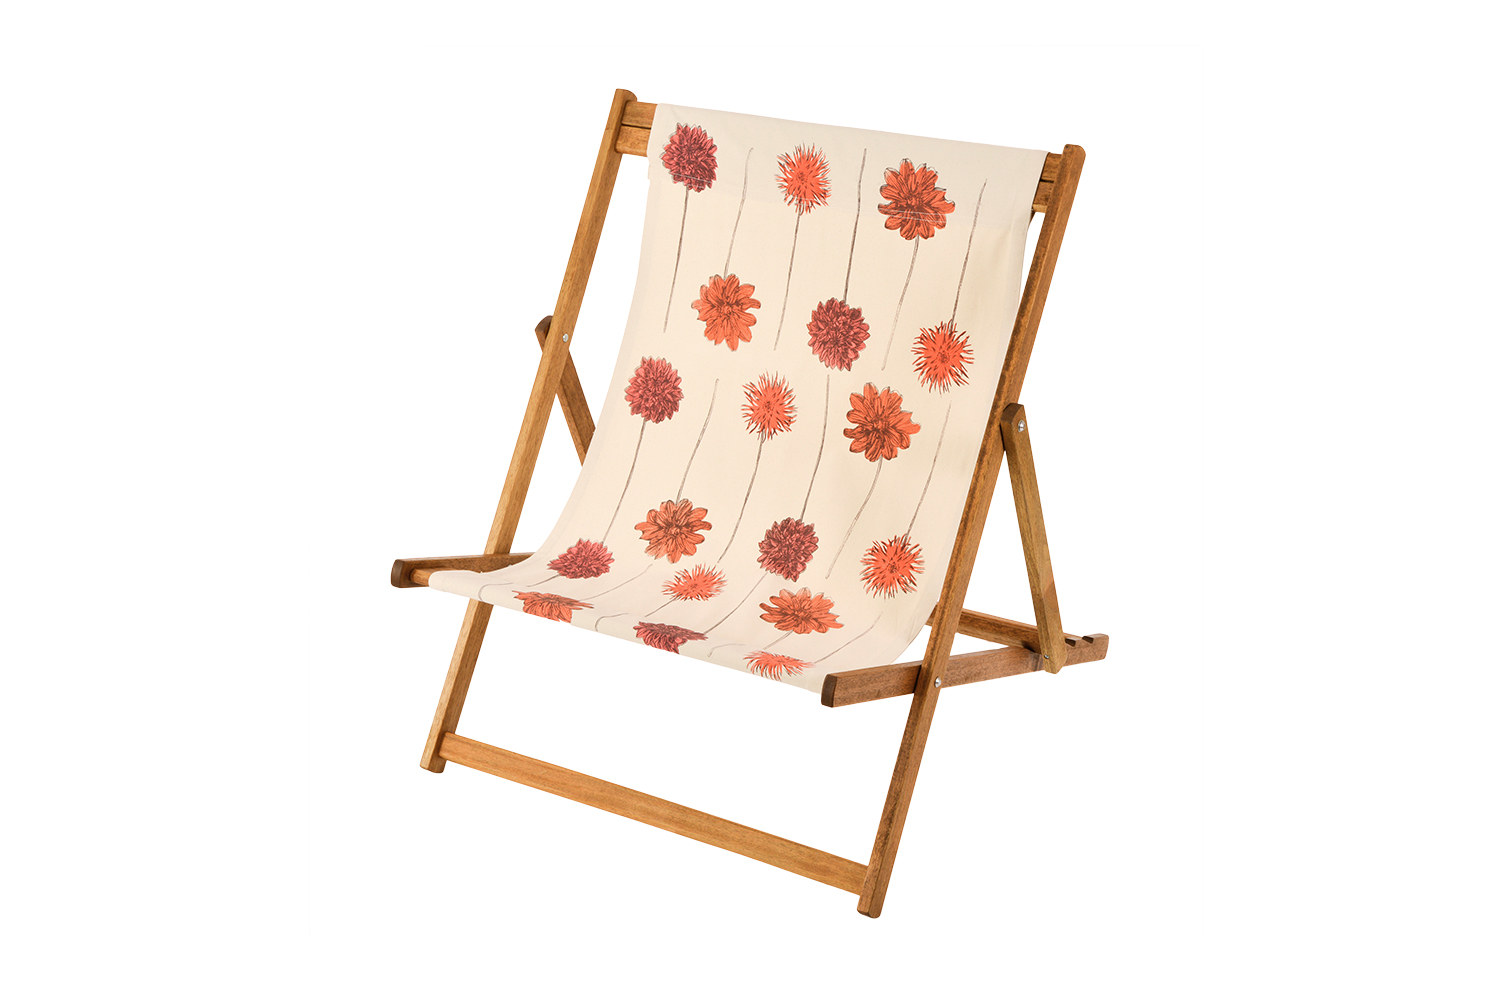 hanging chair notonthehighstreet office z gallerie save spend splurge unfold the deck chairs bricks mortar dahlia double 200 in spaces com